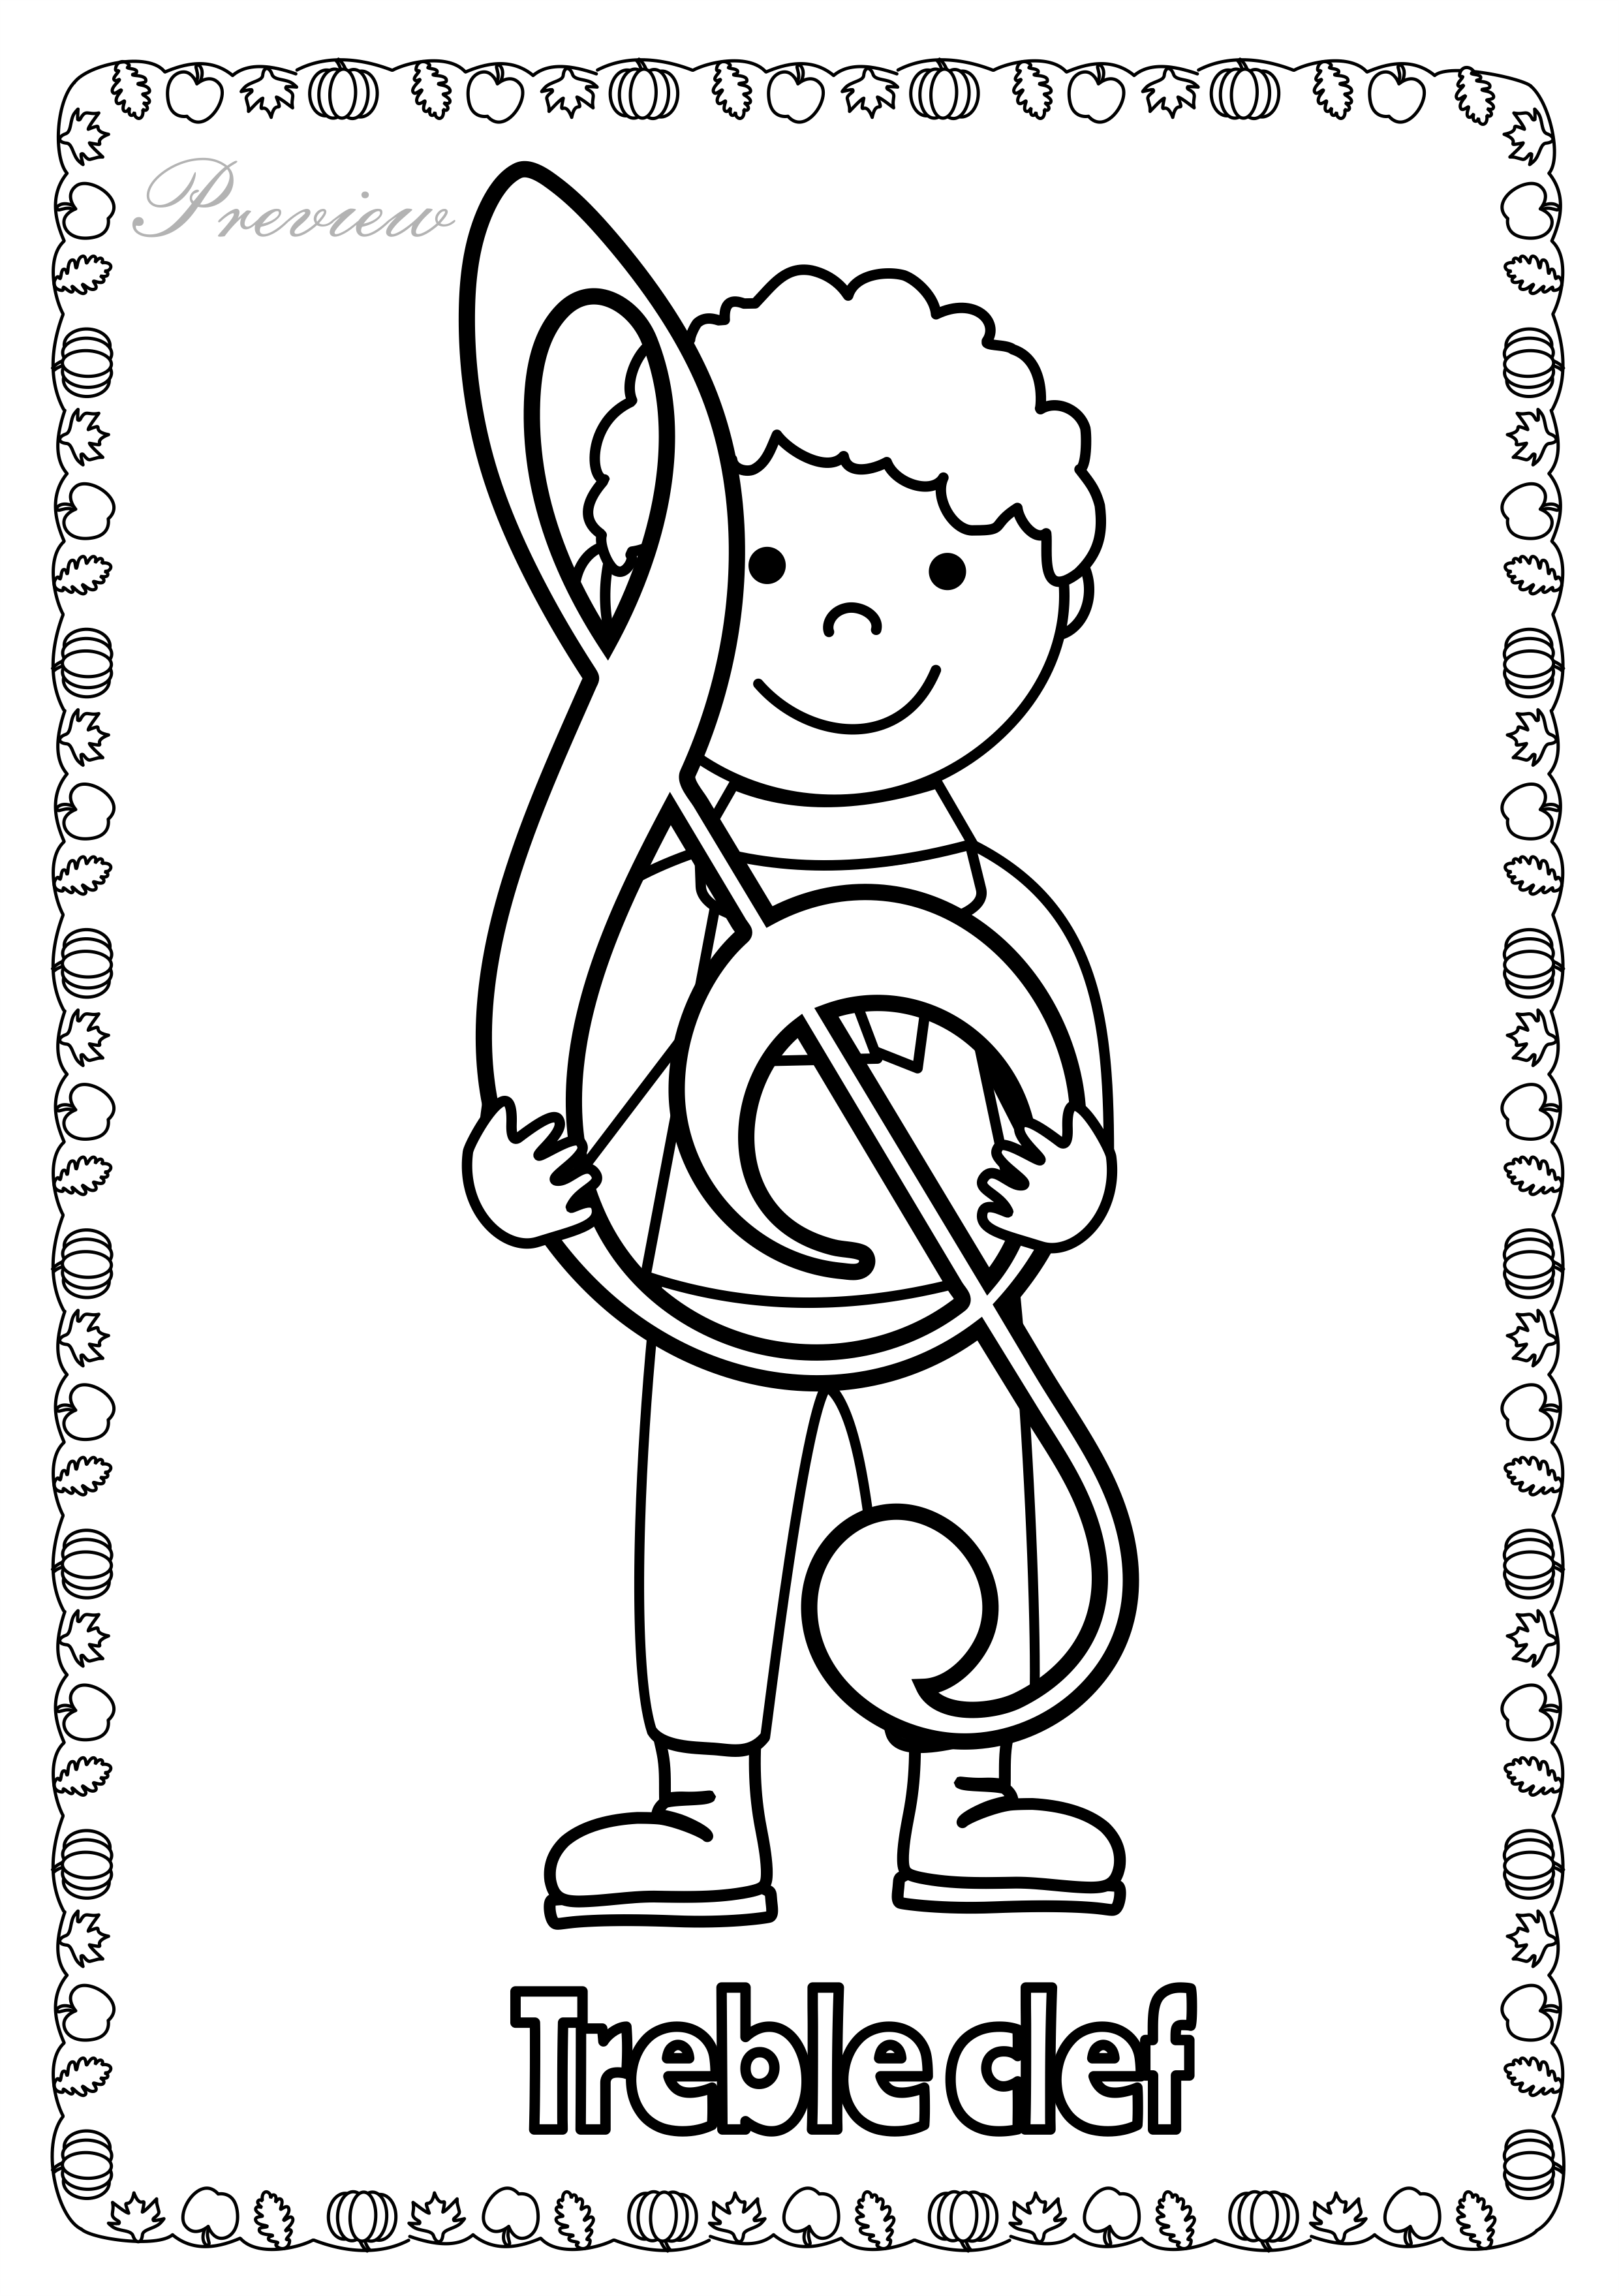 music symbol coloring pages | Fall Musical Posters for Coloring | Music symbols, Treble ...